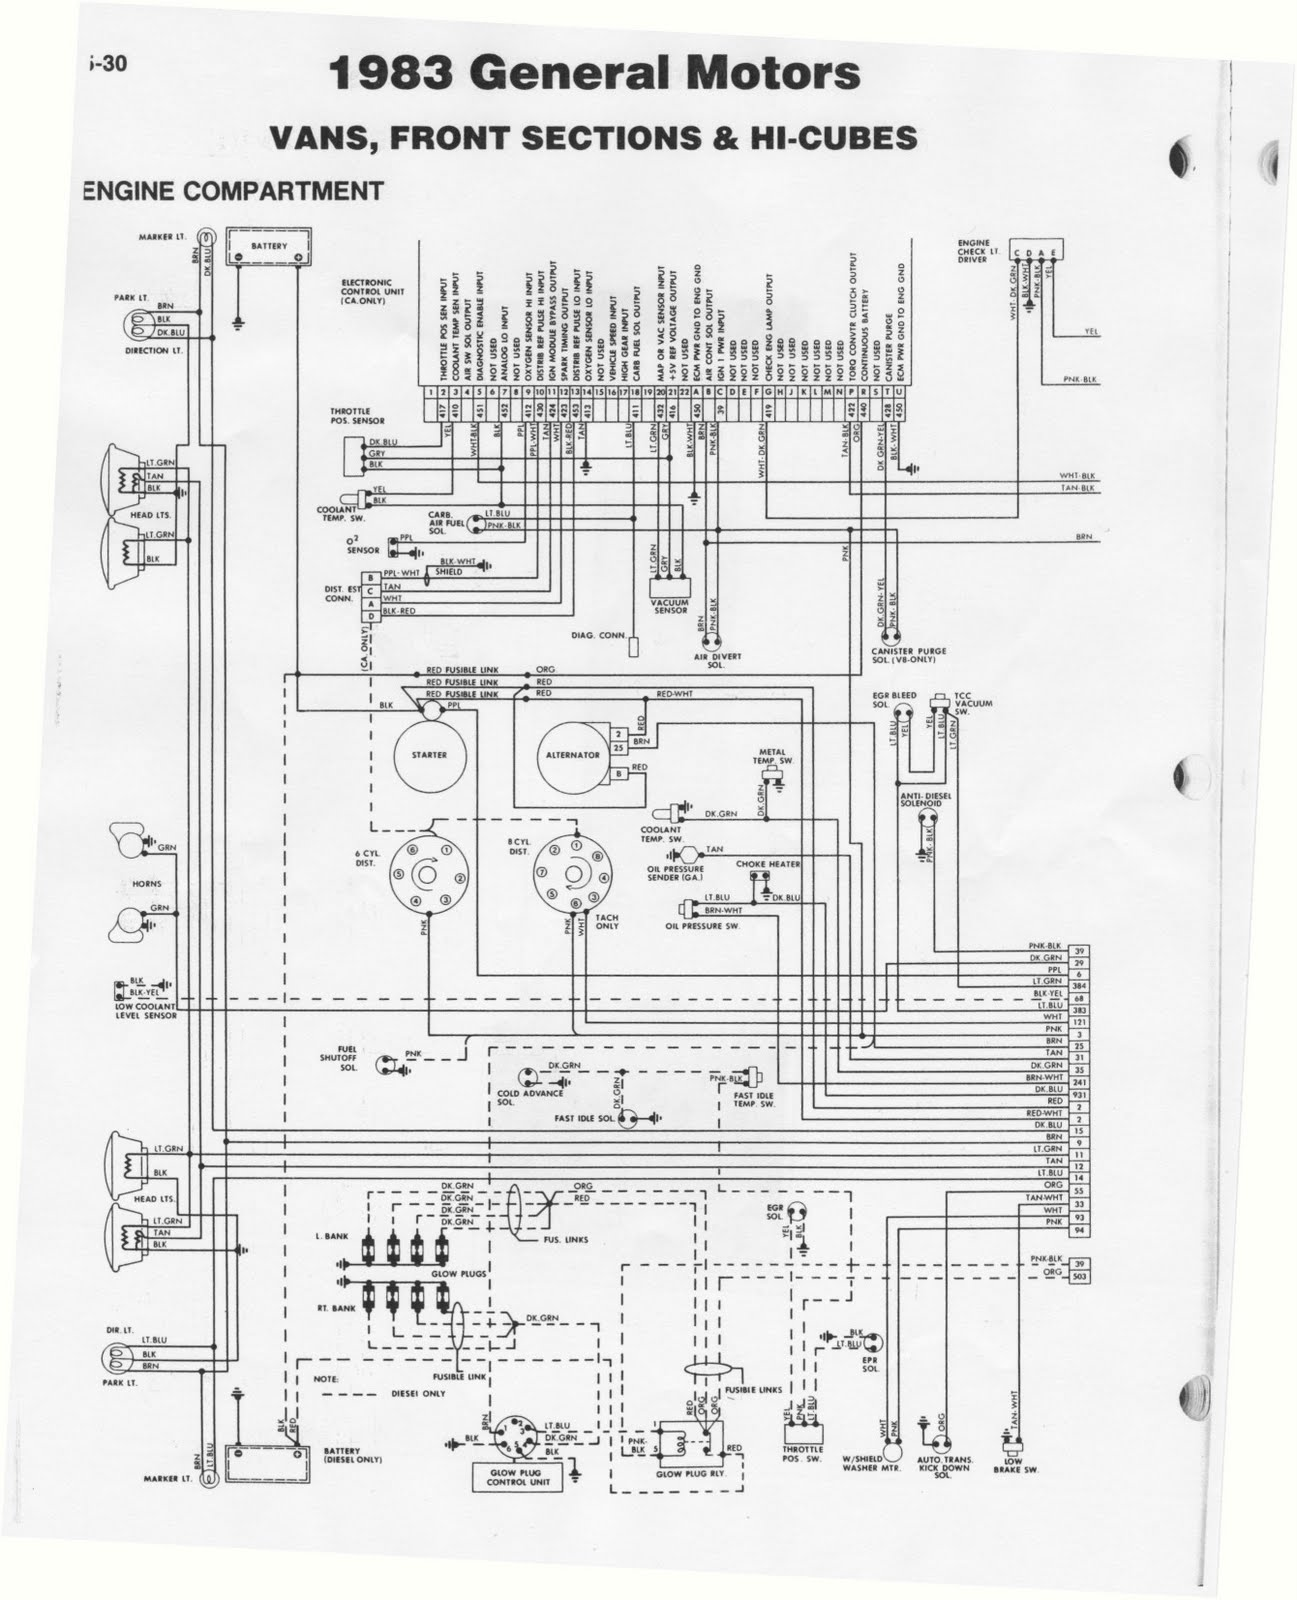 Fleetwood Providence Wiring Diagram Libraries Mercury Cougar Fuse For 95 1995 Bounder Third Level1989